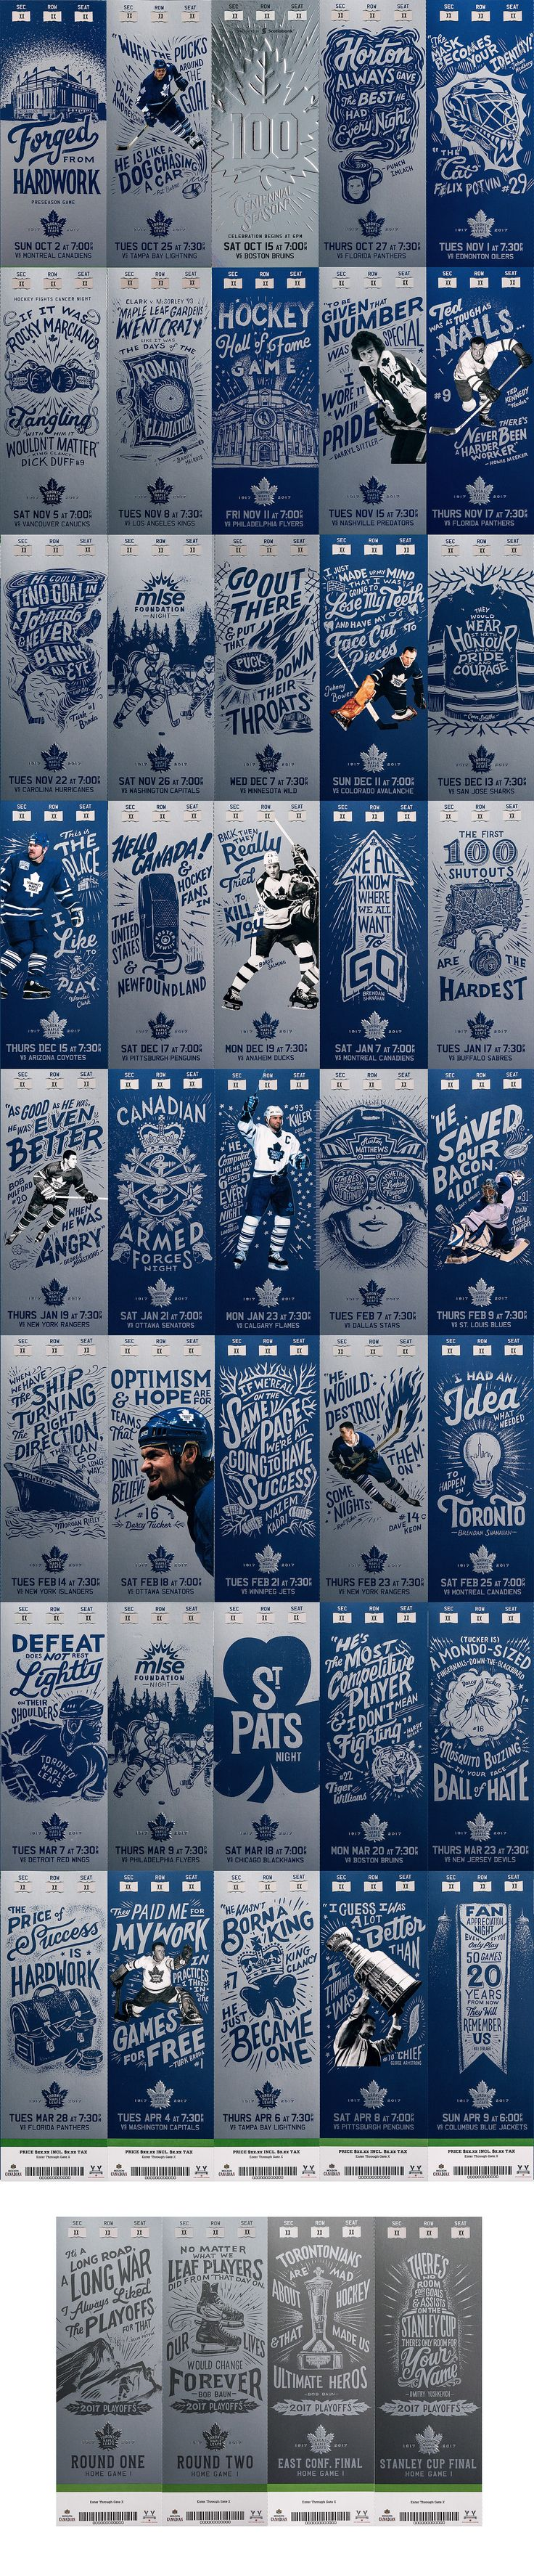 Toronto Maple Leafs - 2017 Season Ticket Package on Behance